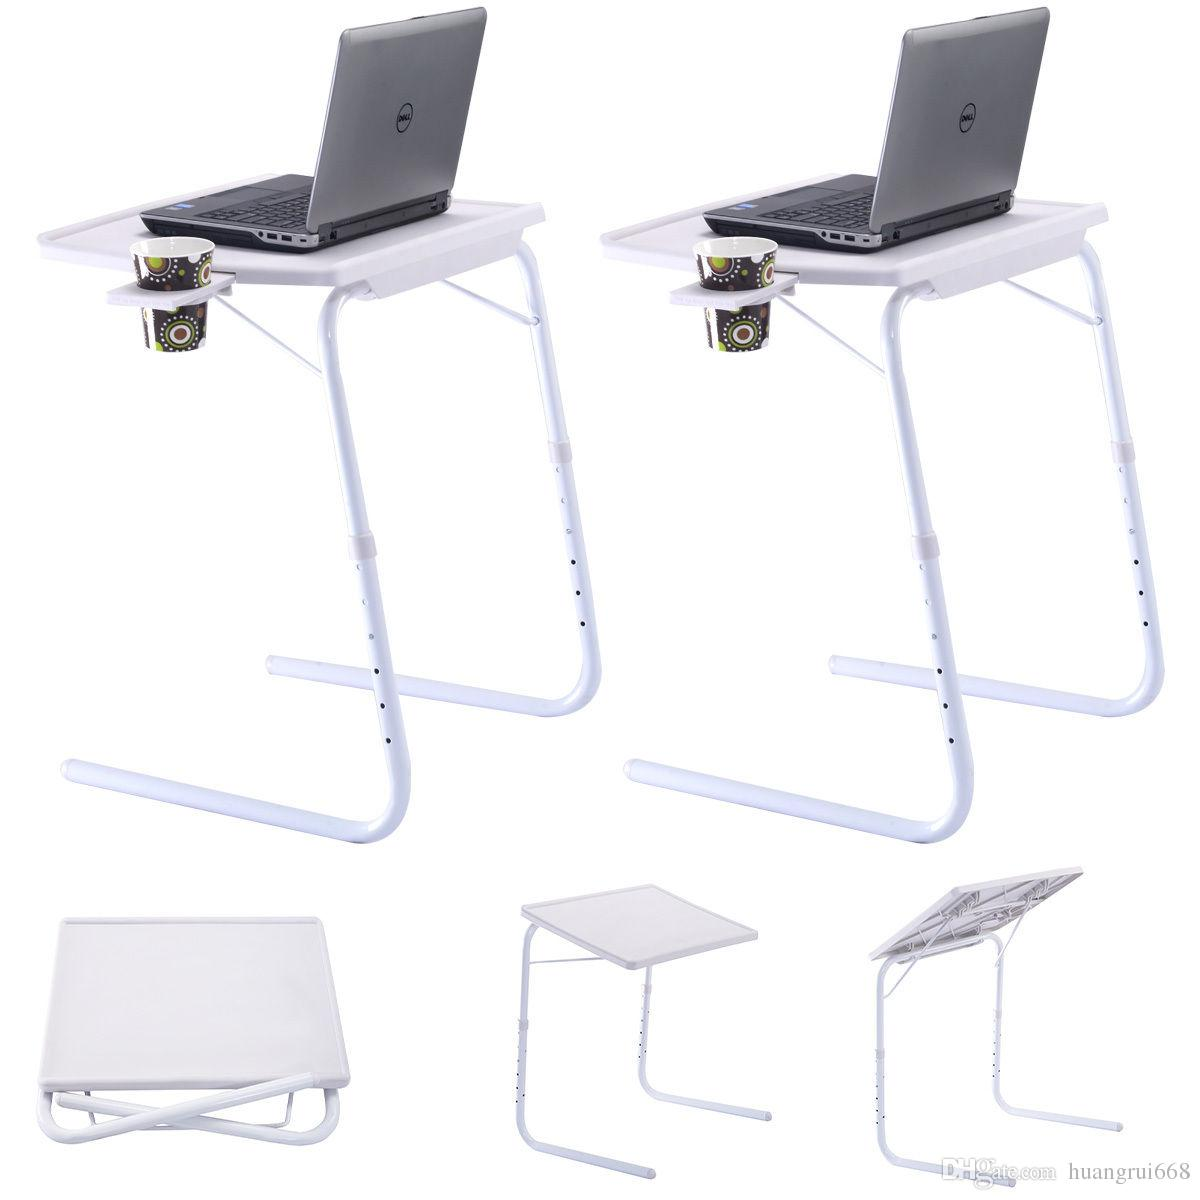 2018 2 X Table Mate Adjule Pc Tv Laptop Desk Tray Home Office S Cup Holder White From Huangrui668 29 14 Dhgate Com